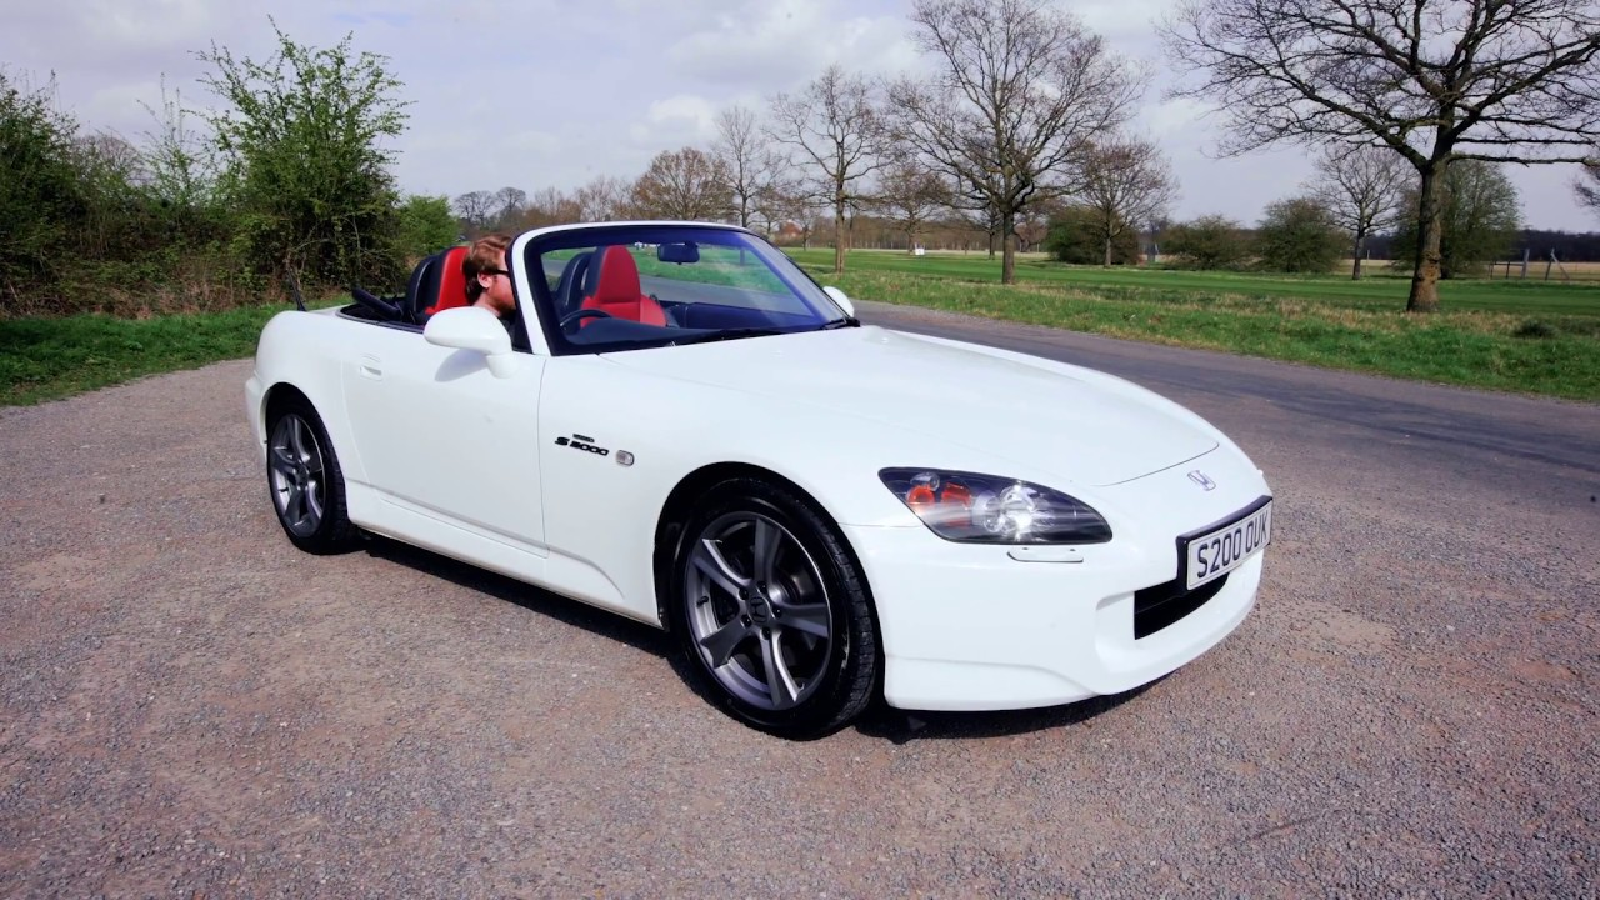 S2000, arguments, pros and cons